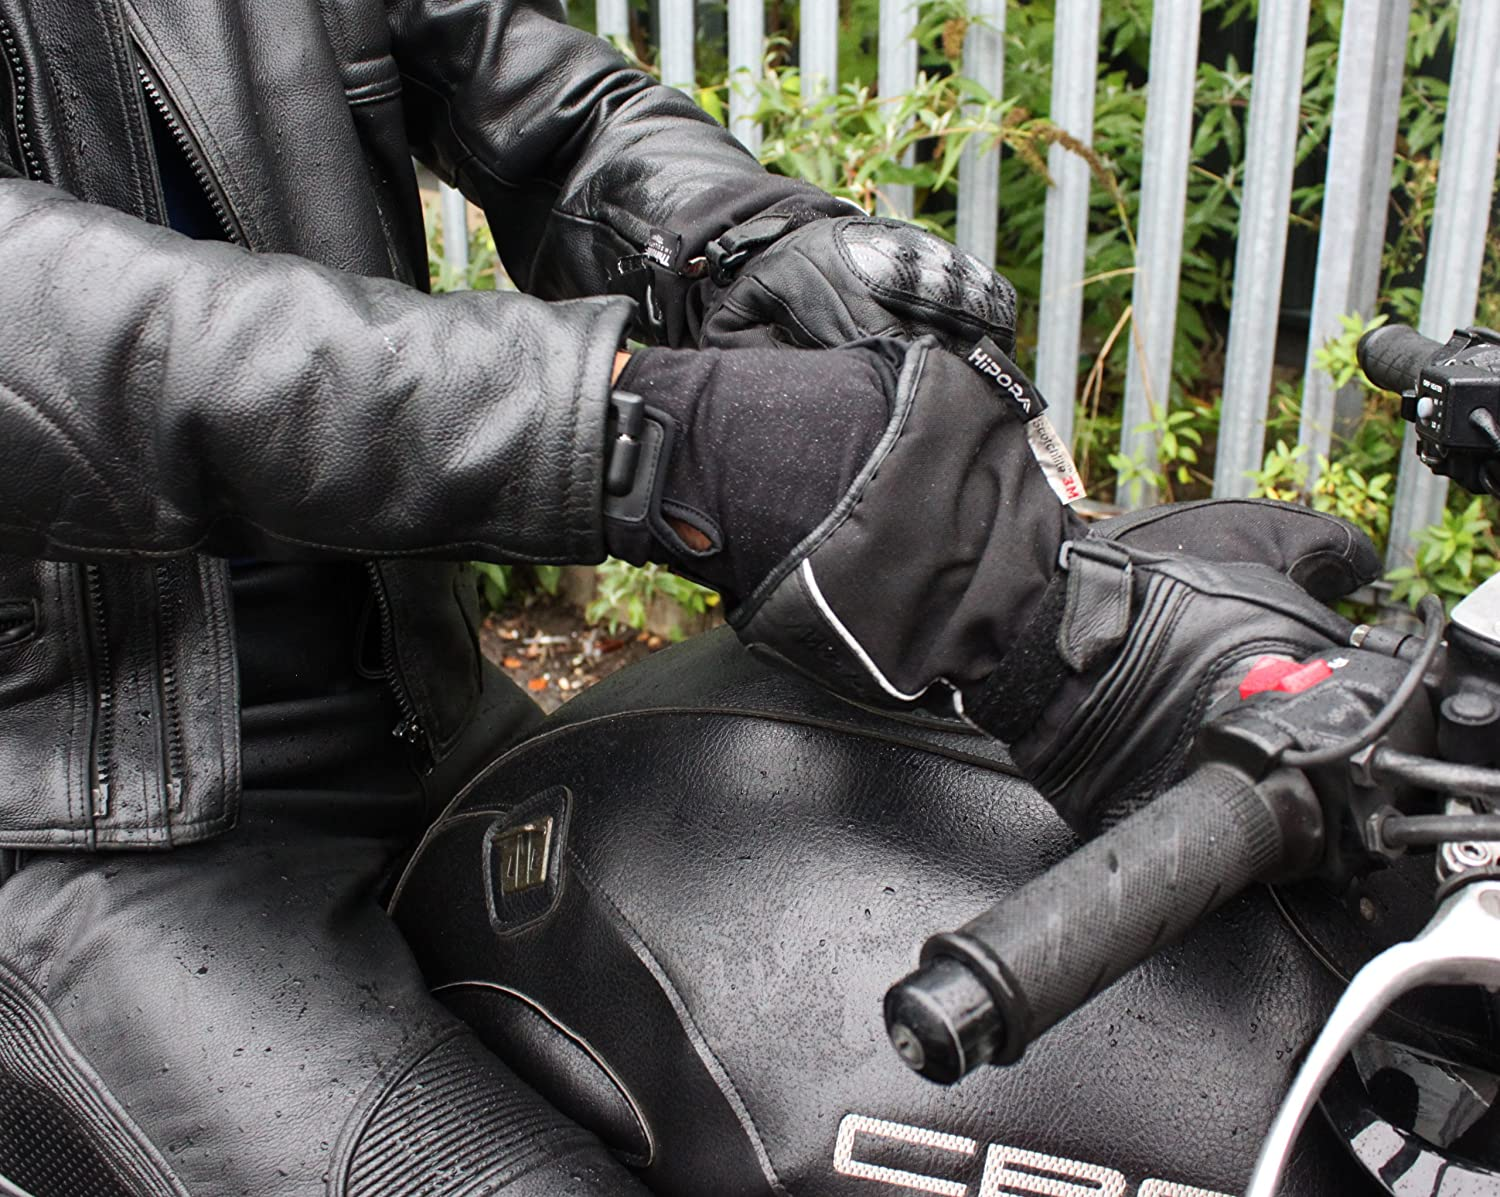 Warmawear Deluxe Electric Battery Operated Heated Glove Liners